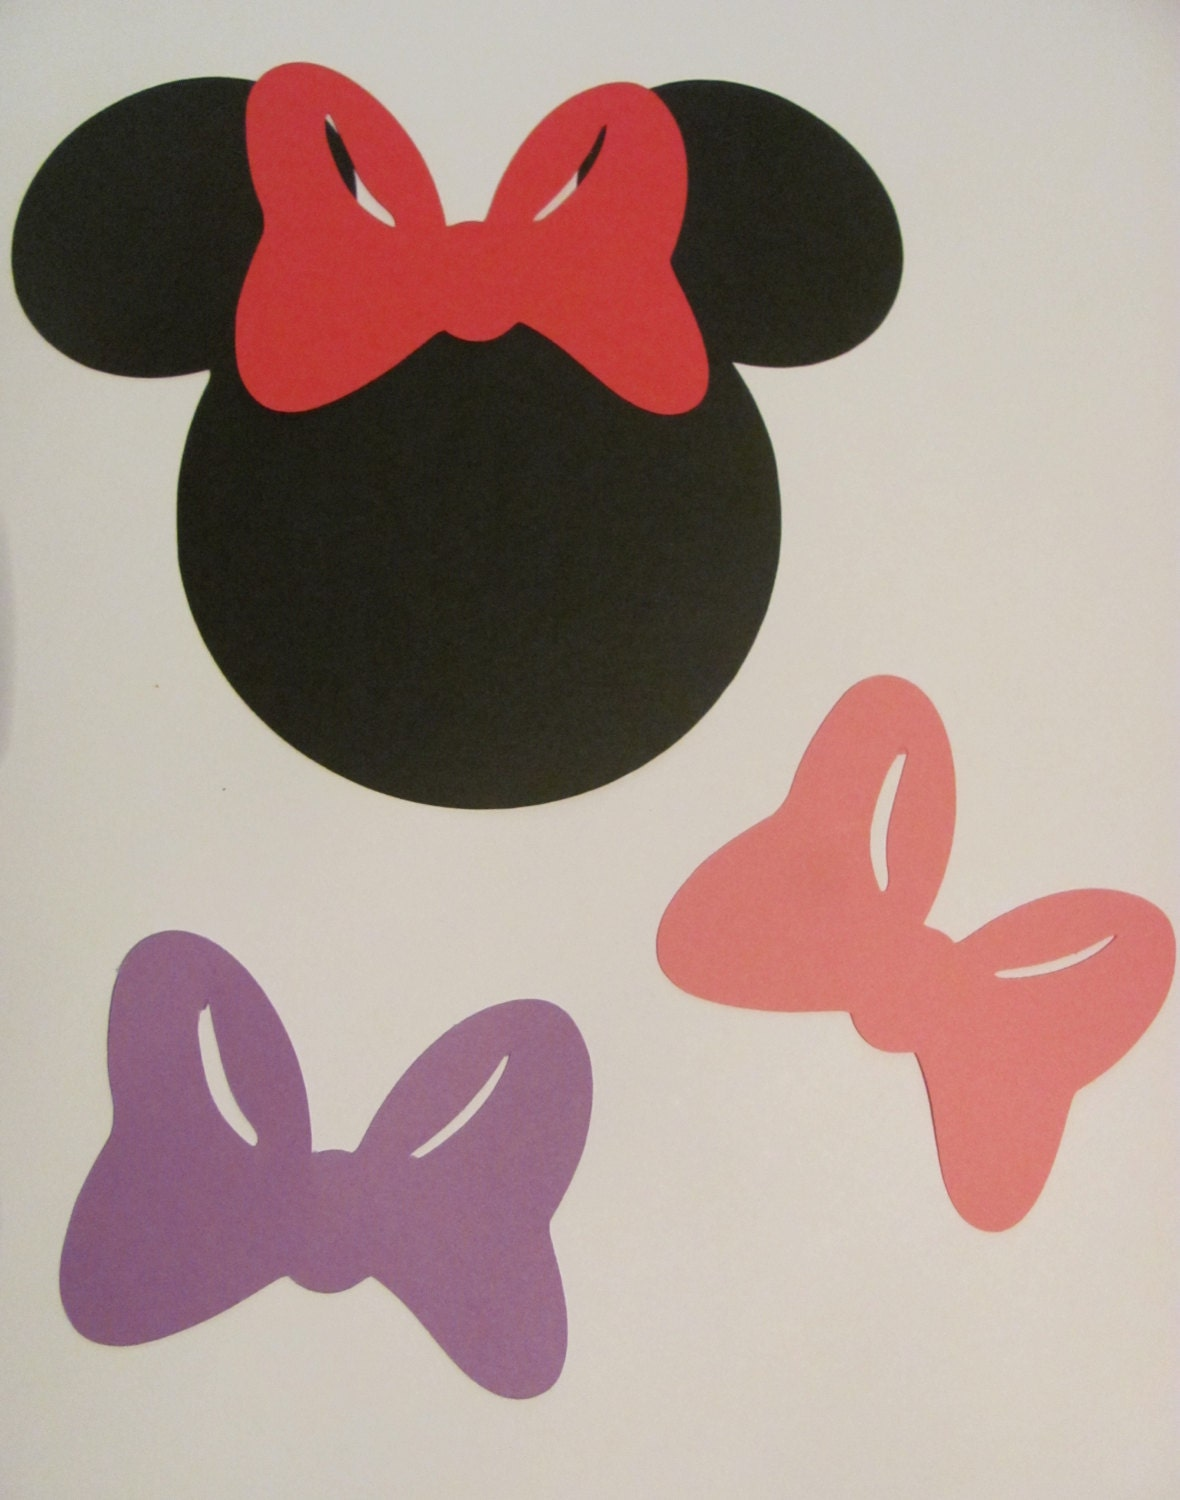 25 5 Minnie Mouse Silhouettes with Bows by ThePaperExpressShop